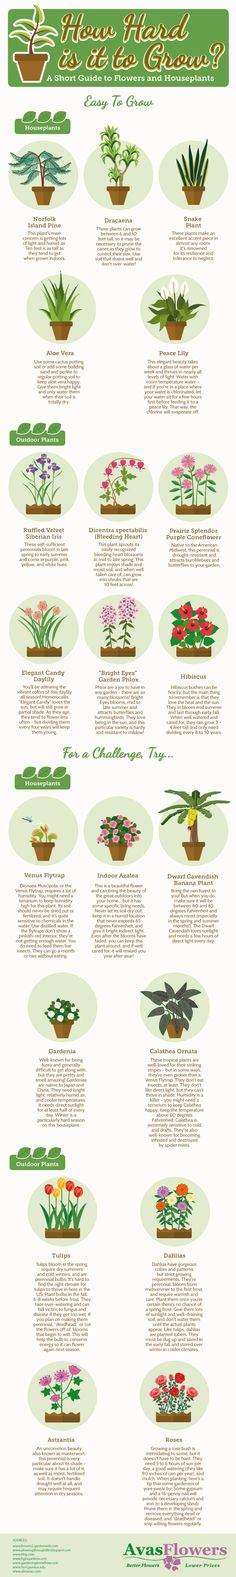 Take a look at this infographic for suggestions on plants that are low maintenance and others that are a fun challenge!